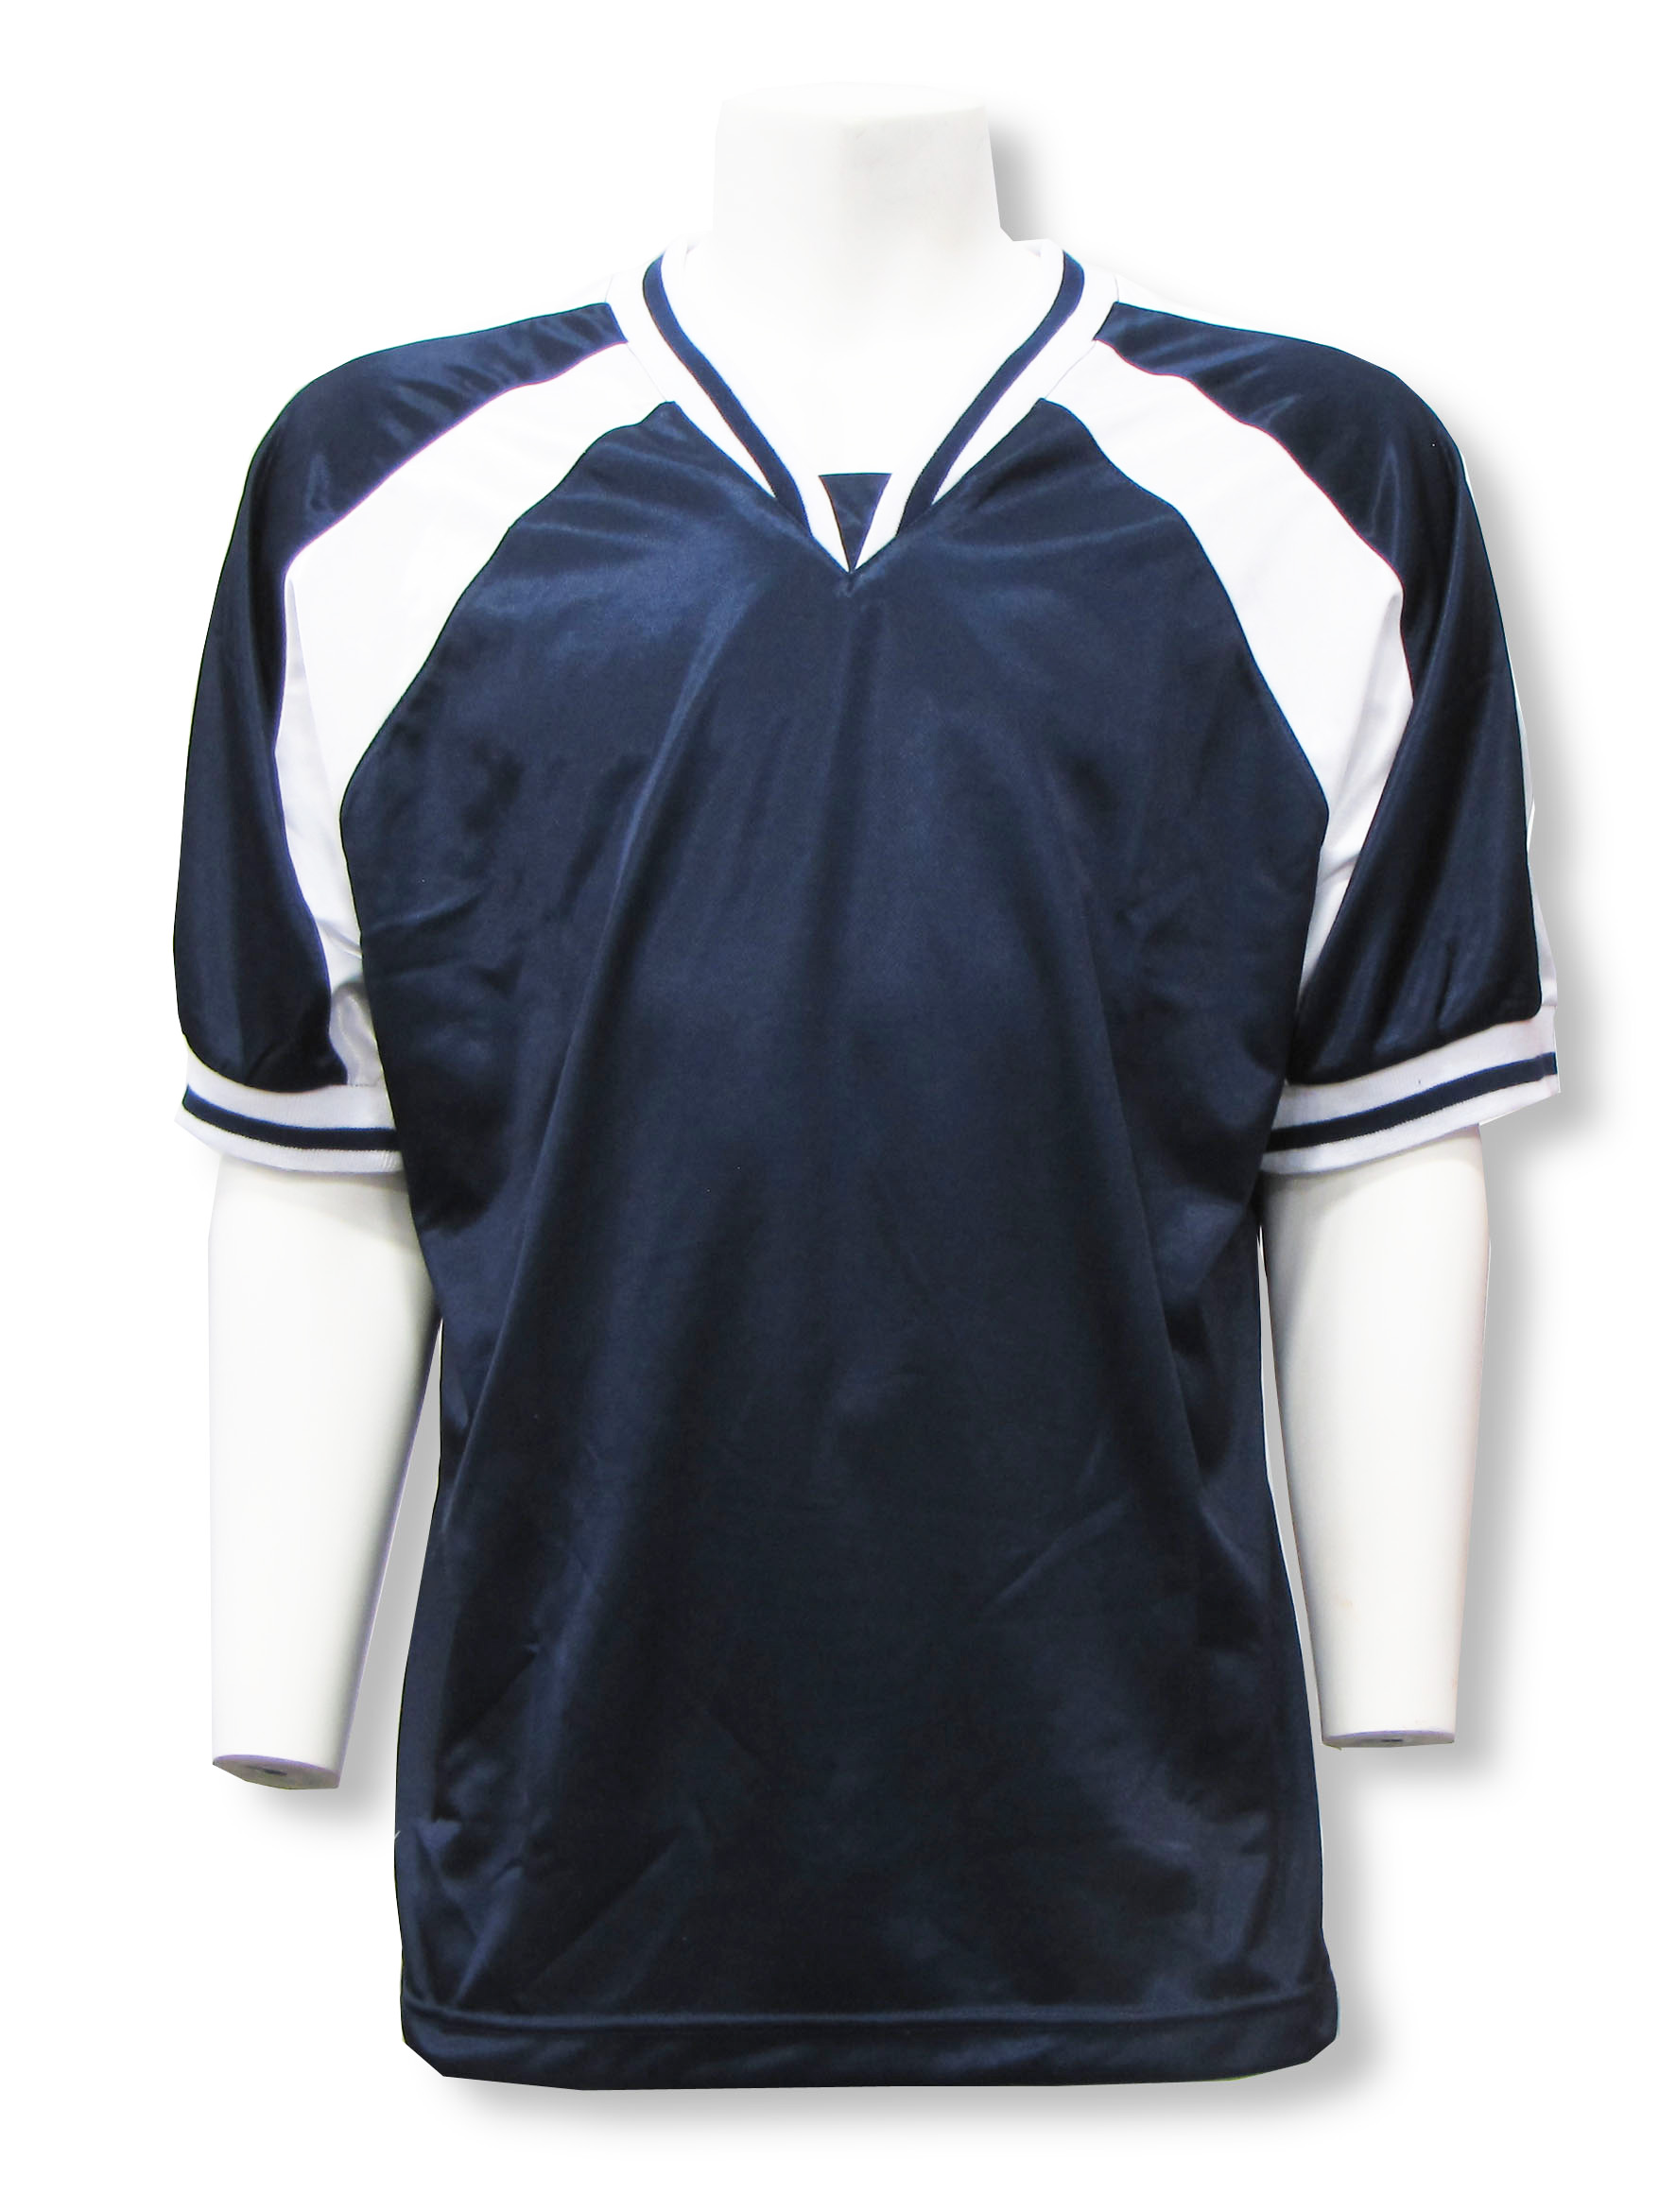 Spitfire soccer jersey in navy/white by Code Four Athletics